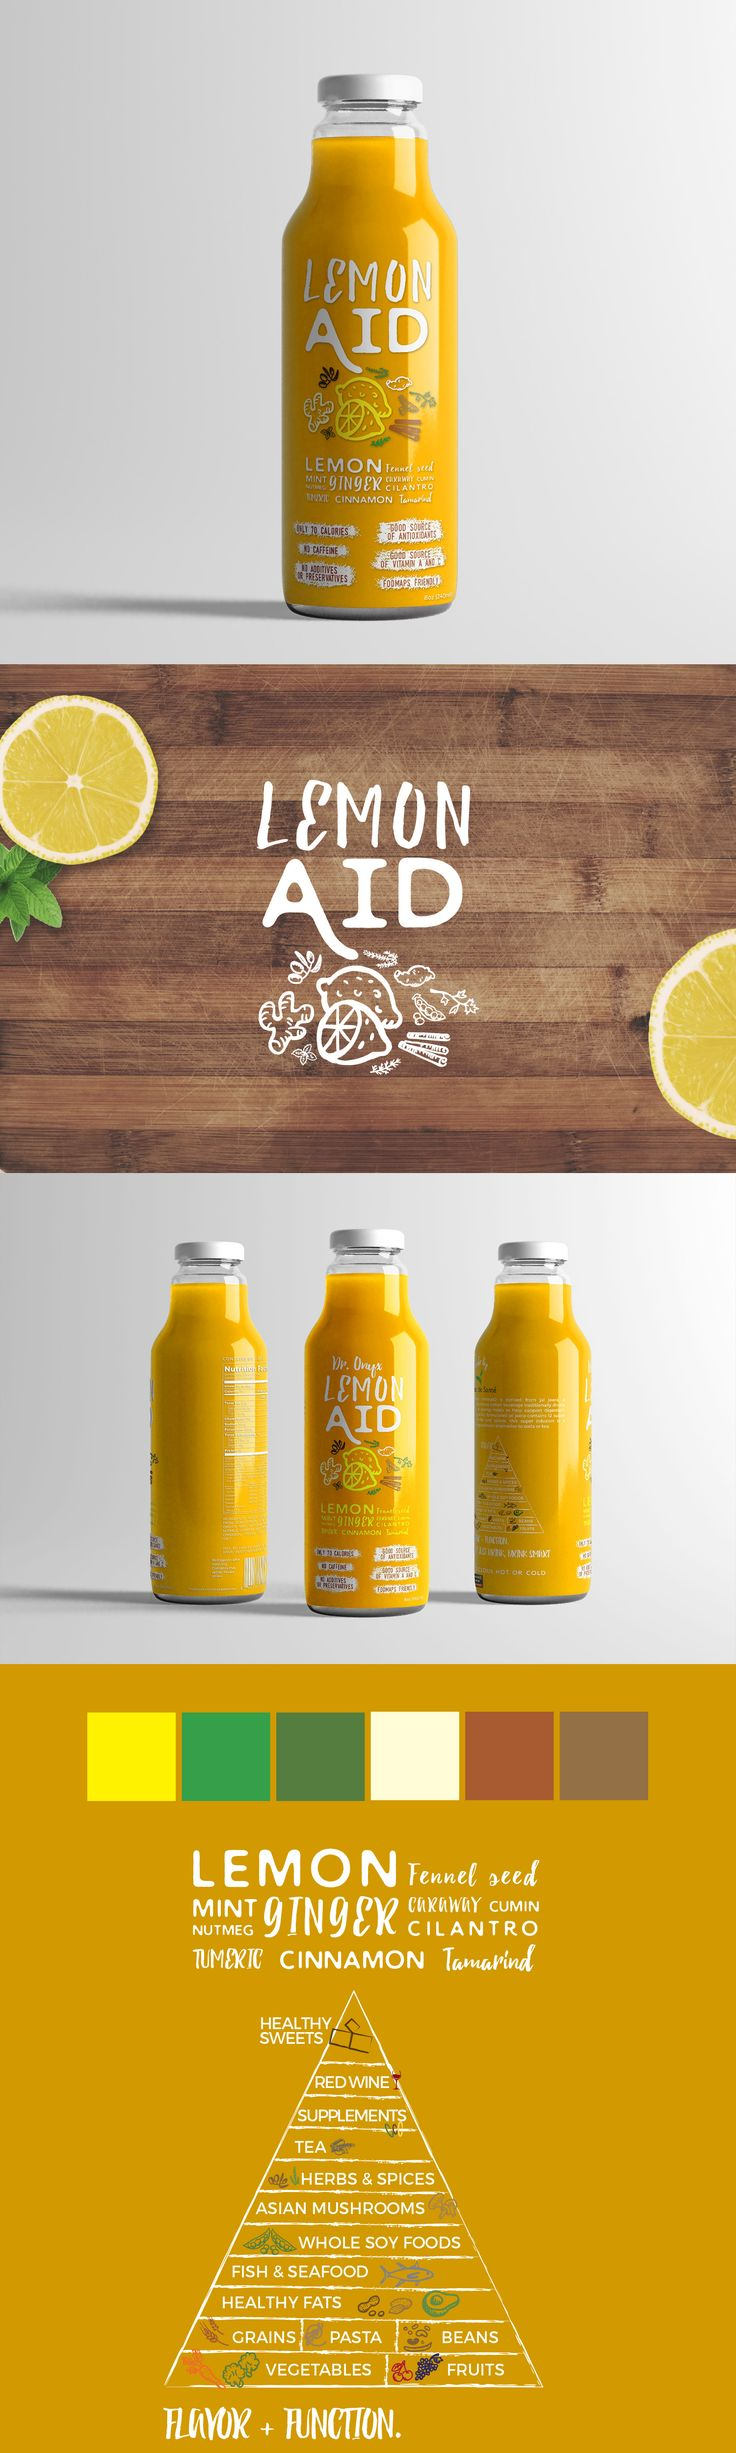 LemonAID is a healthy drink that needed an upscale modern look incorporating a clear label on a glass juice bottle. Although this label design wasn't chosen as the final they use, we incorporated a hand-made packaging design with handwriting and hand-drawn fruits & vegetables for that down to earth organic feel.